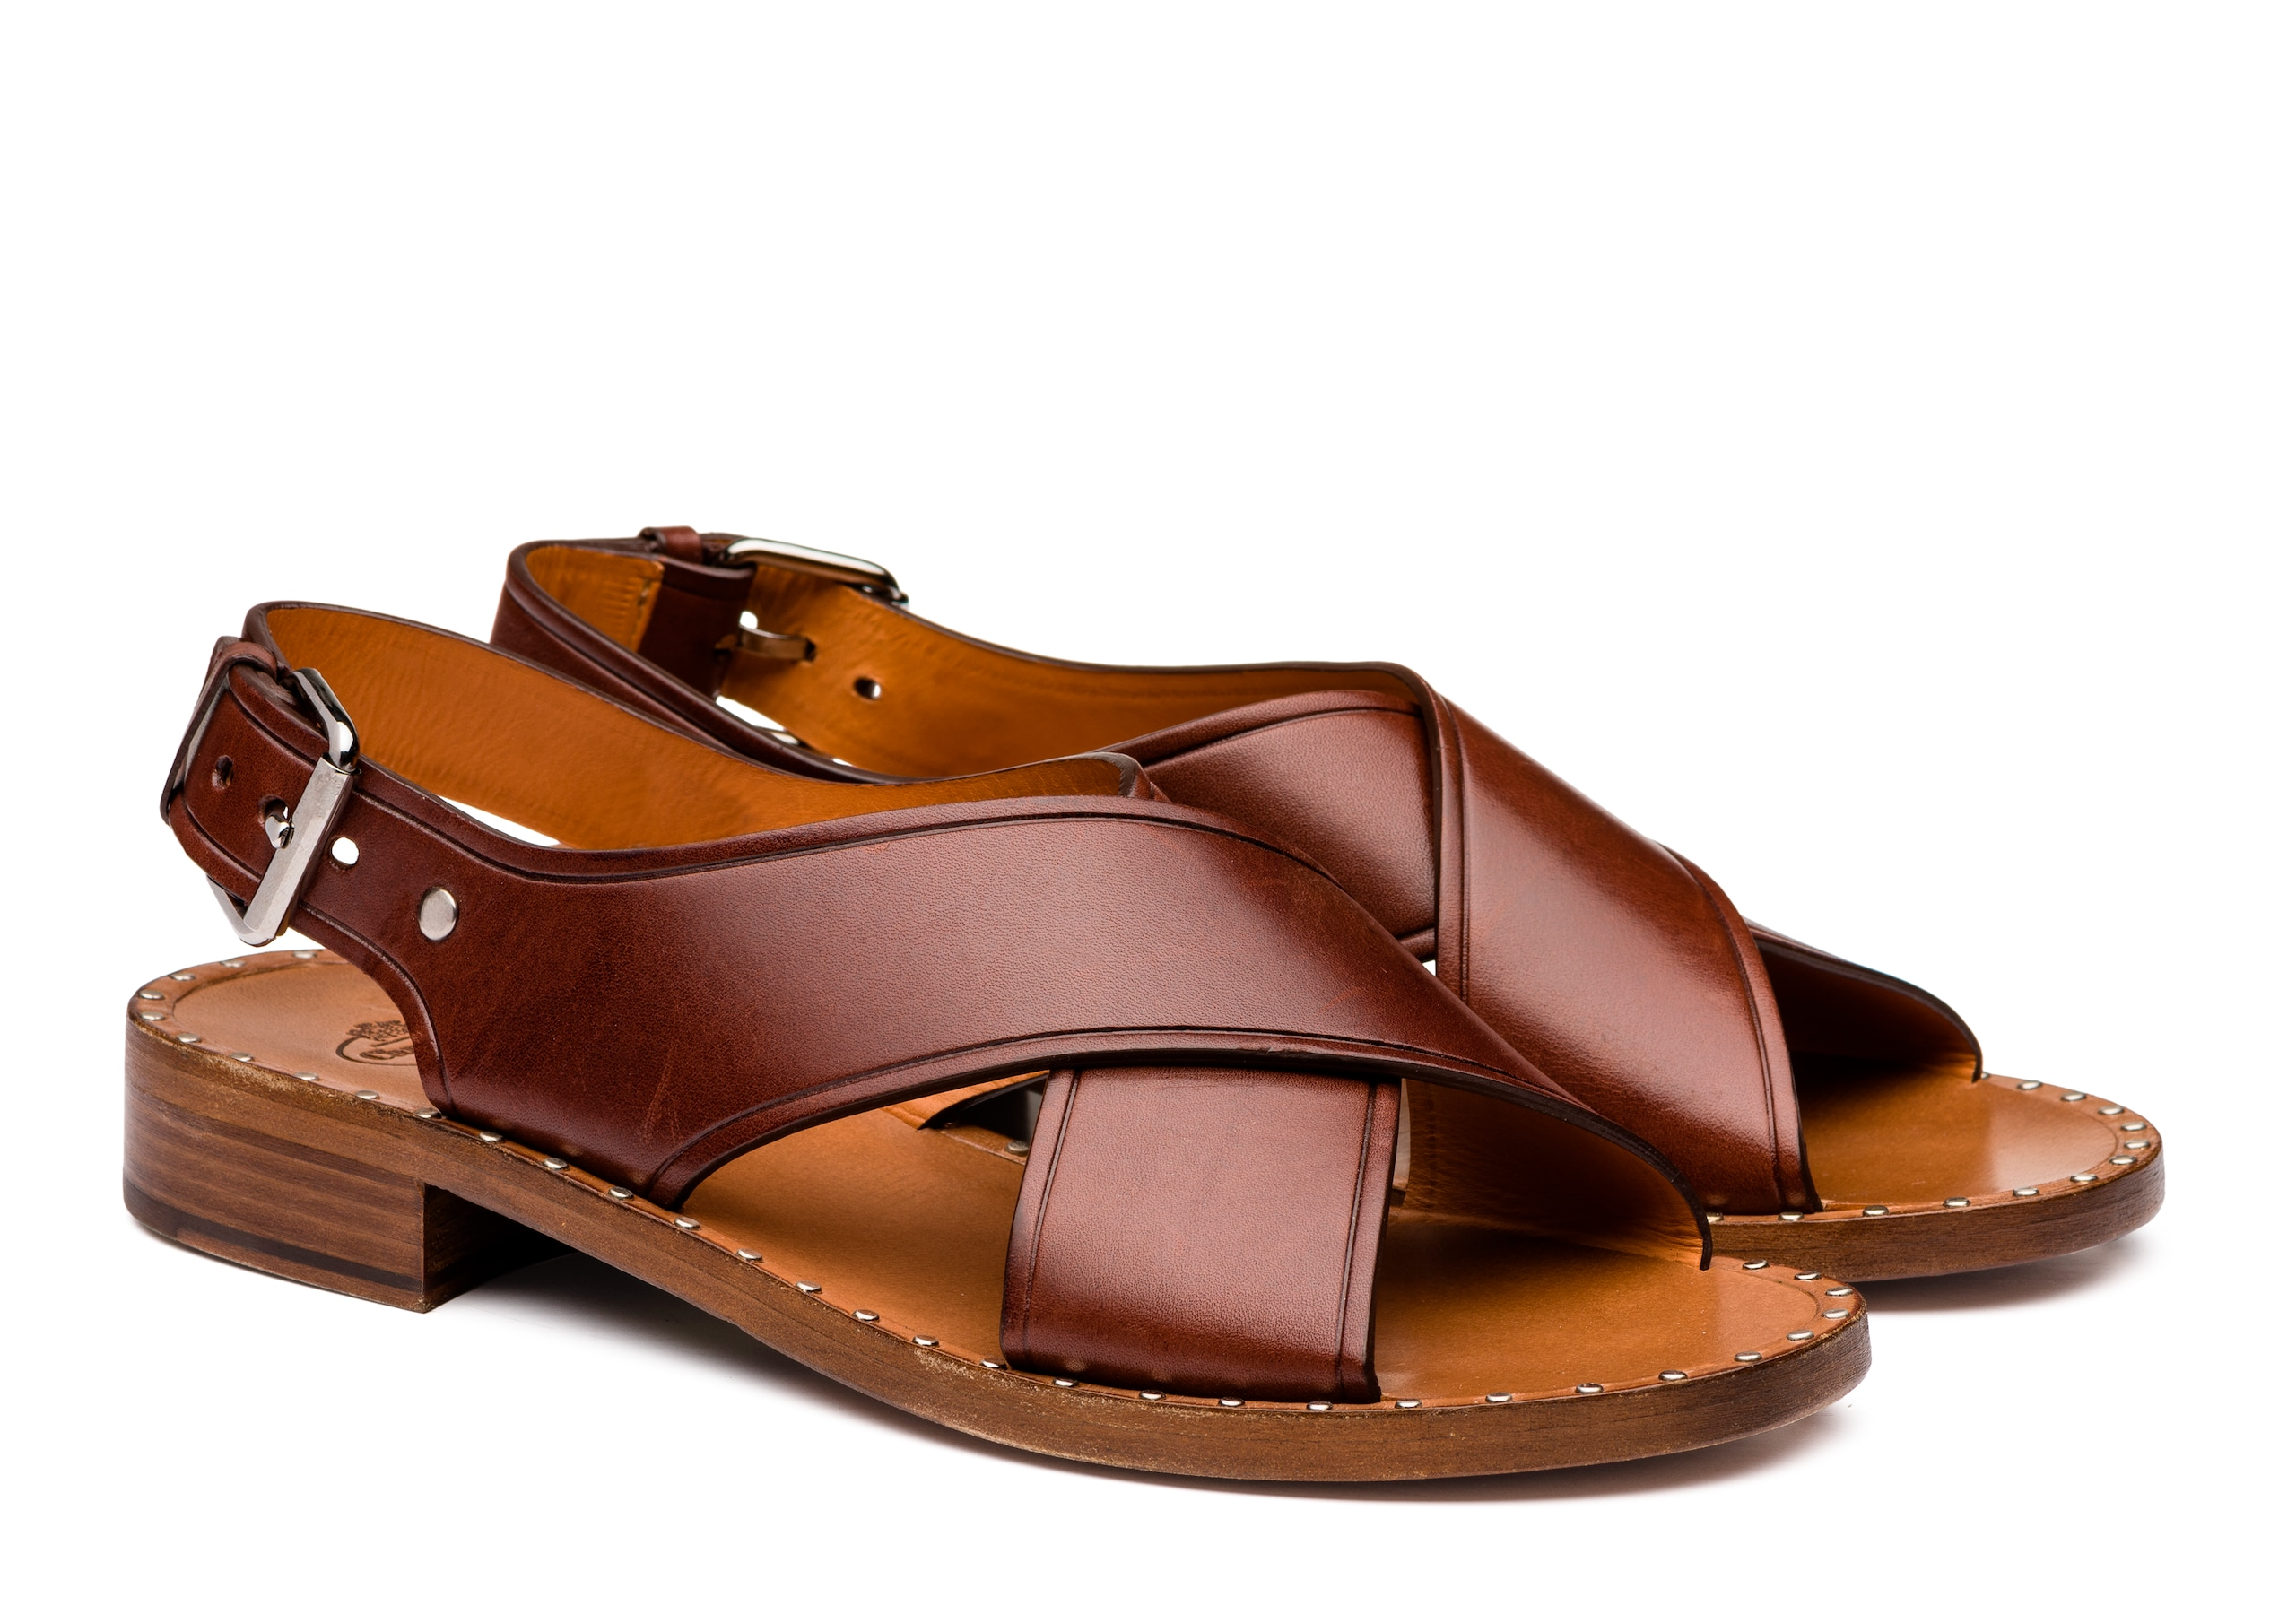 Rhonda Church's Sandalo in Pelle di Vitello Marrone